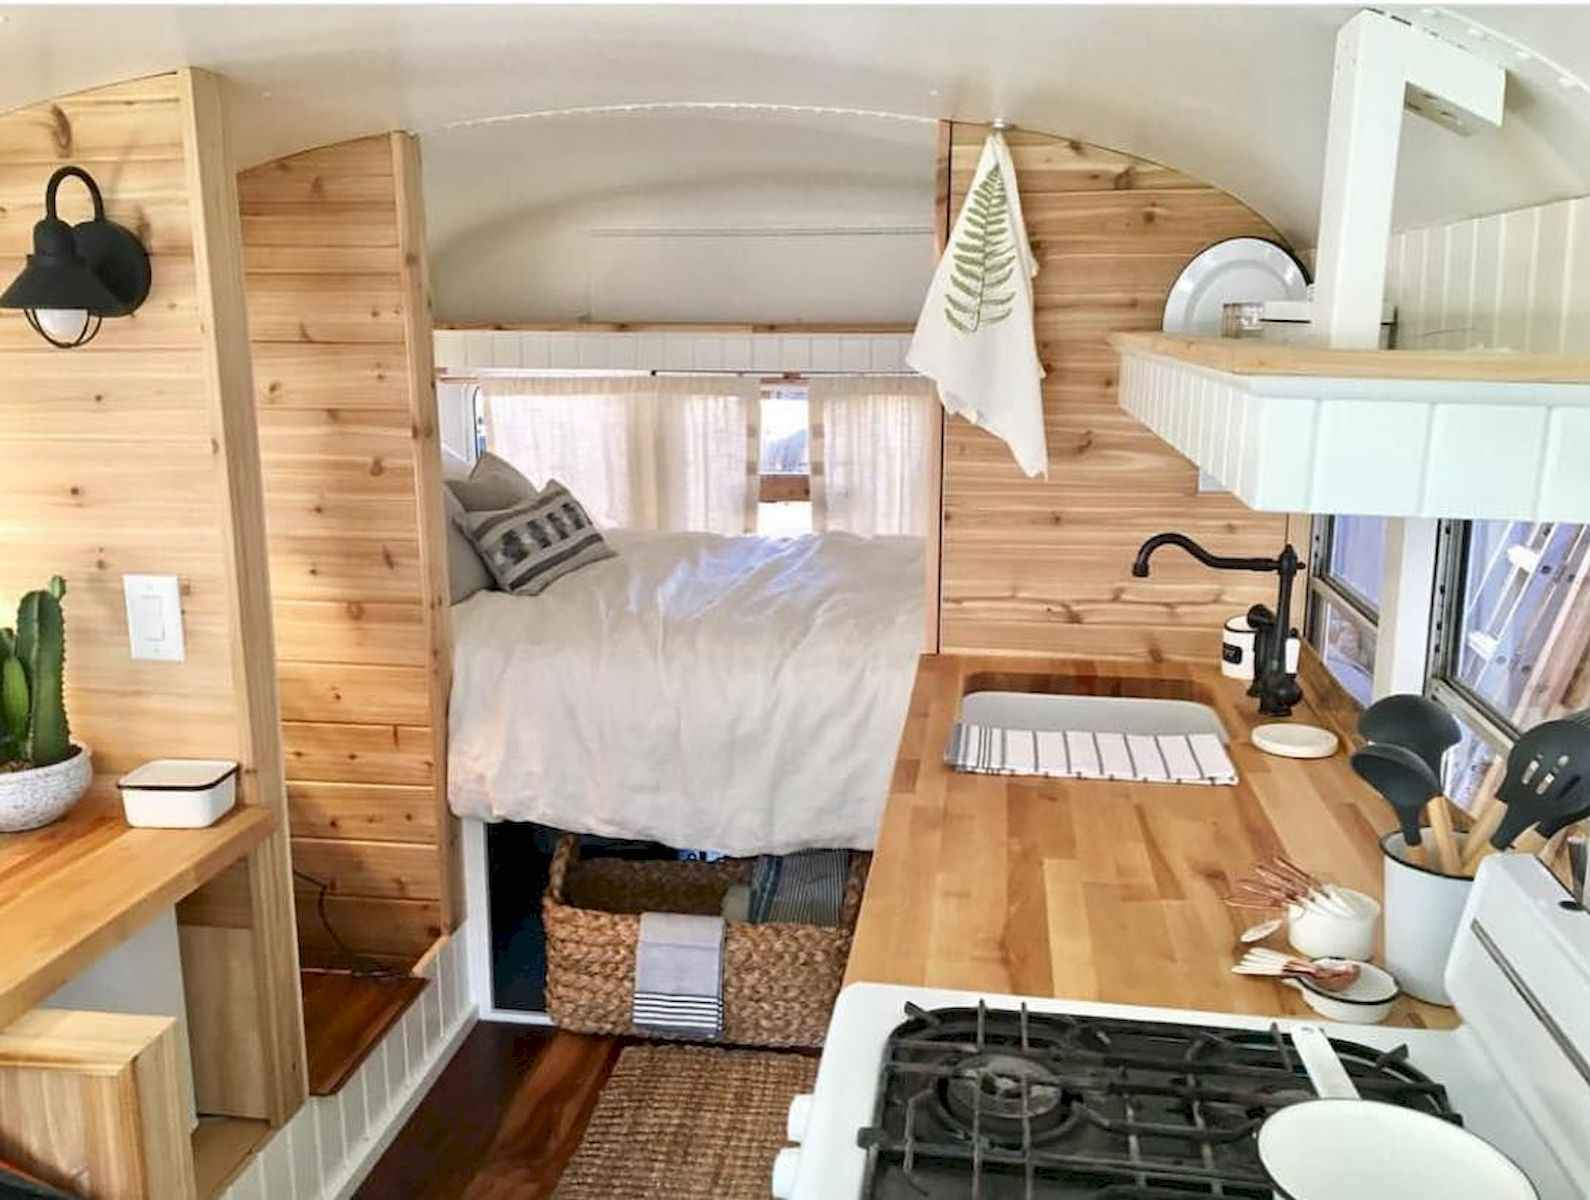 70 Stunning RV Living Camper Room Ideas Decorations Make Your Summer Awesome (24)